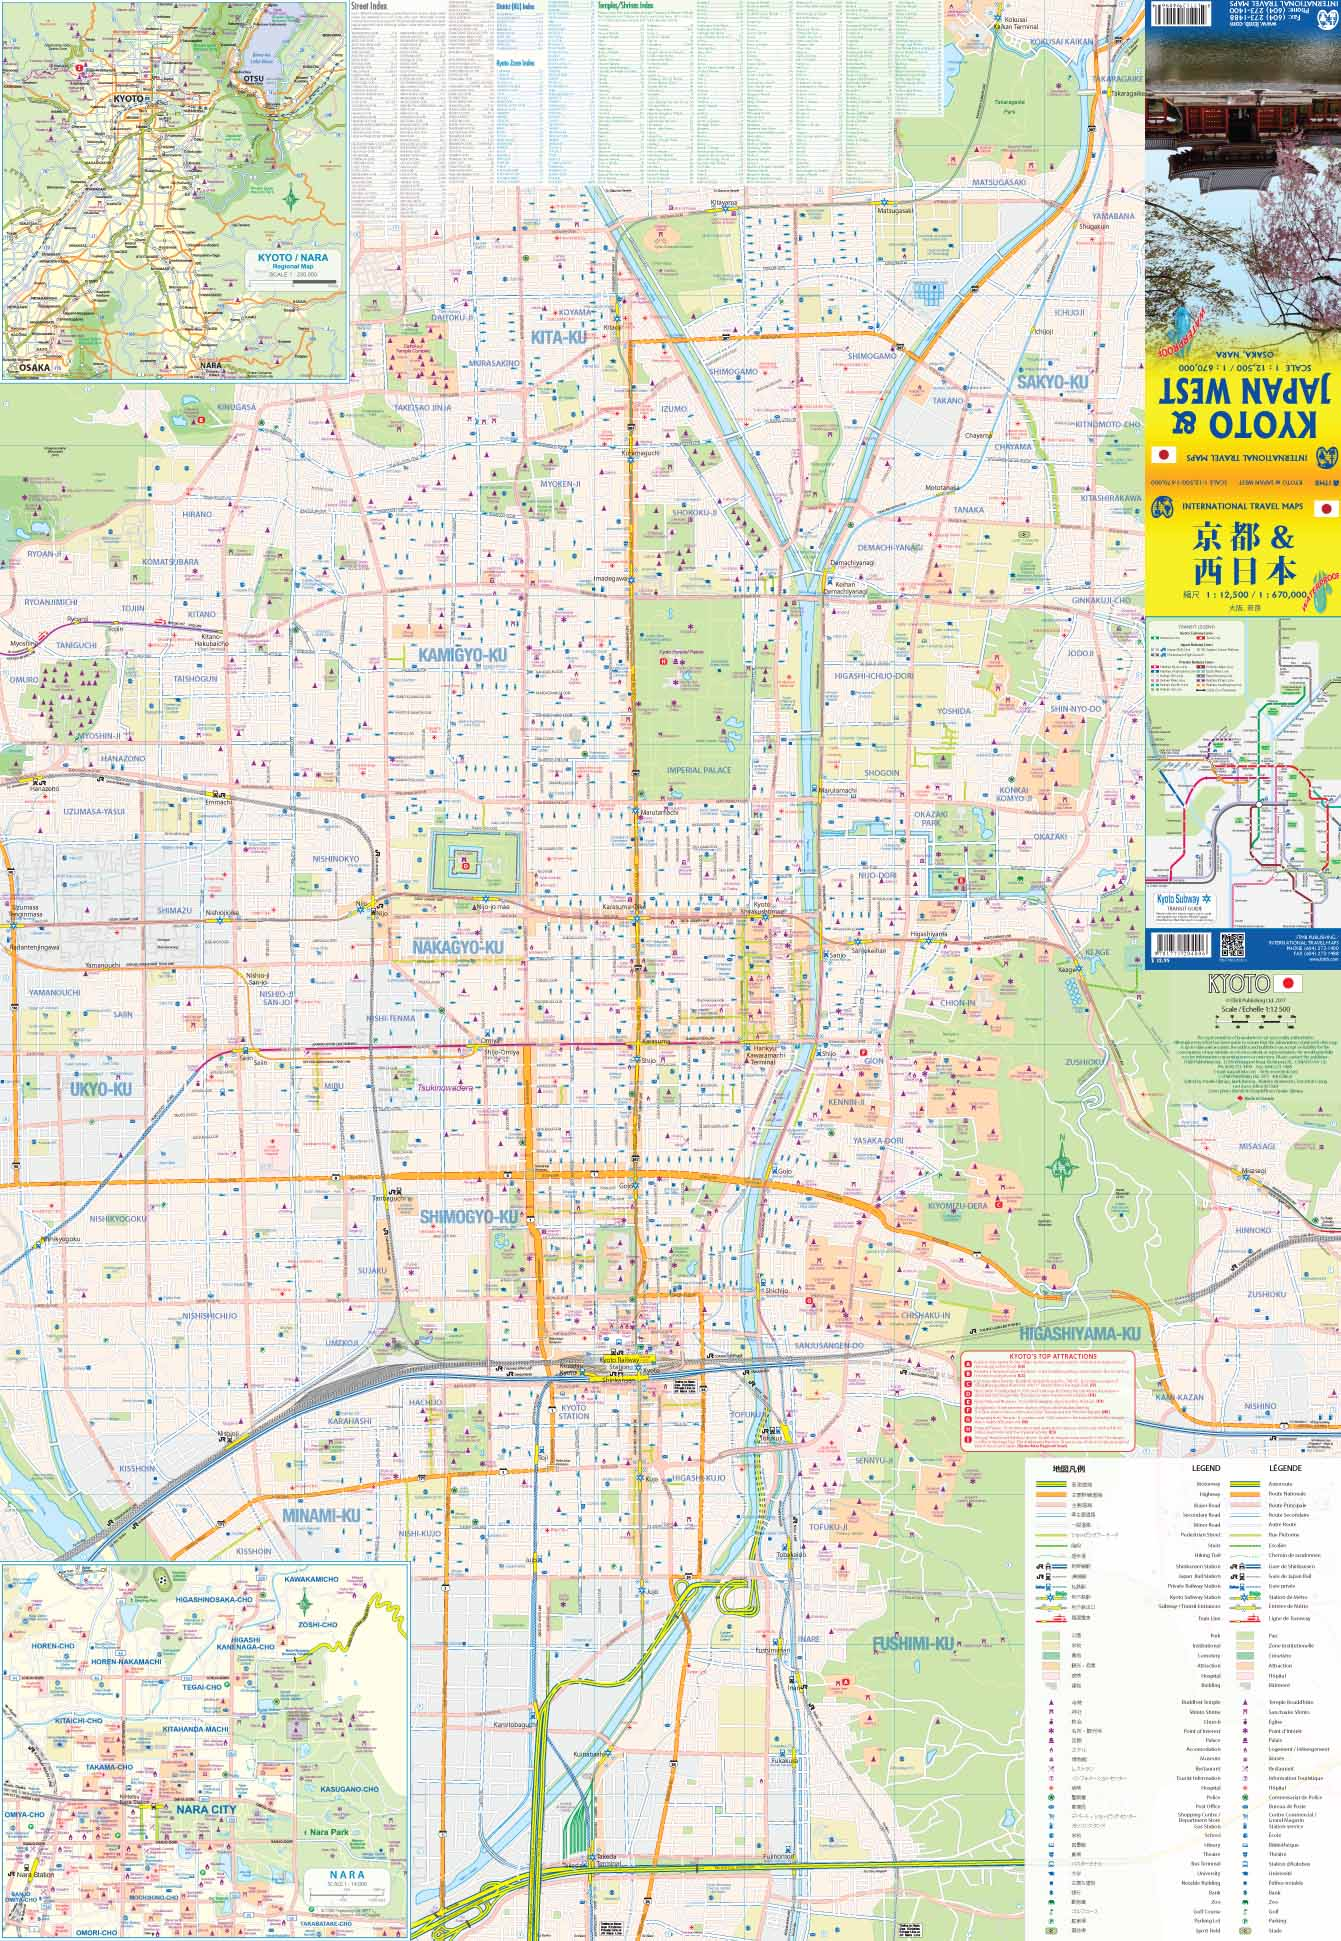 kyoto-western-japan-travel-map-[2]-1257-p Show Map All Rivers Of Us on us river system map, united states rivers map, blank us map, las vegas rivers map, major us river map, rivers in america map,